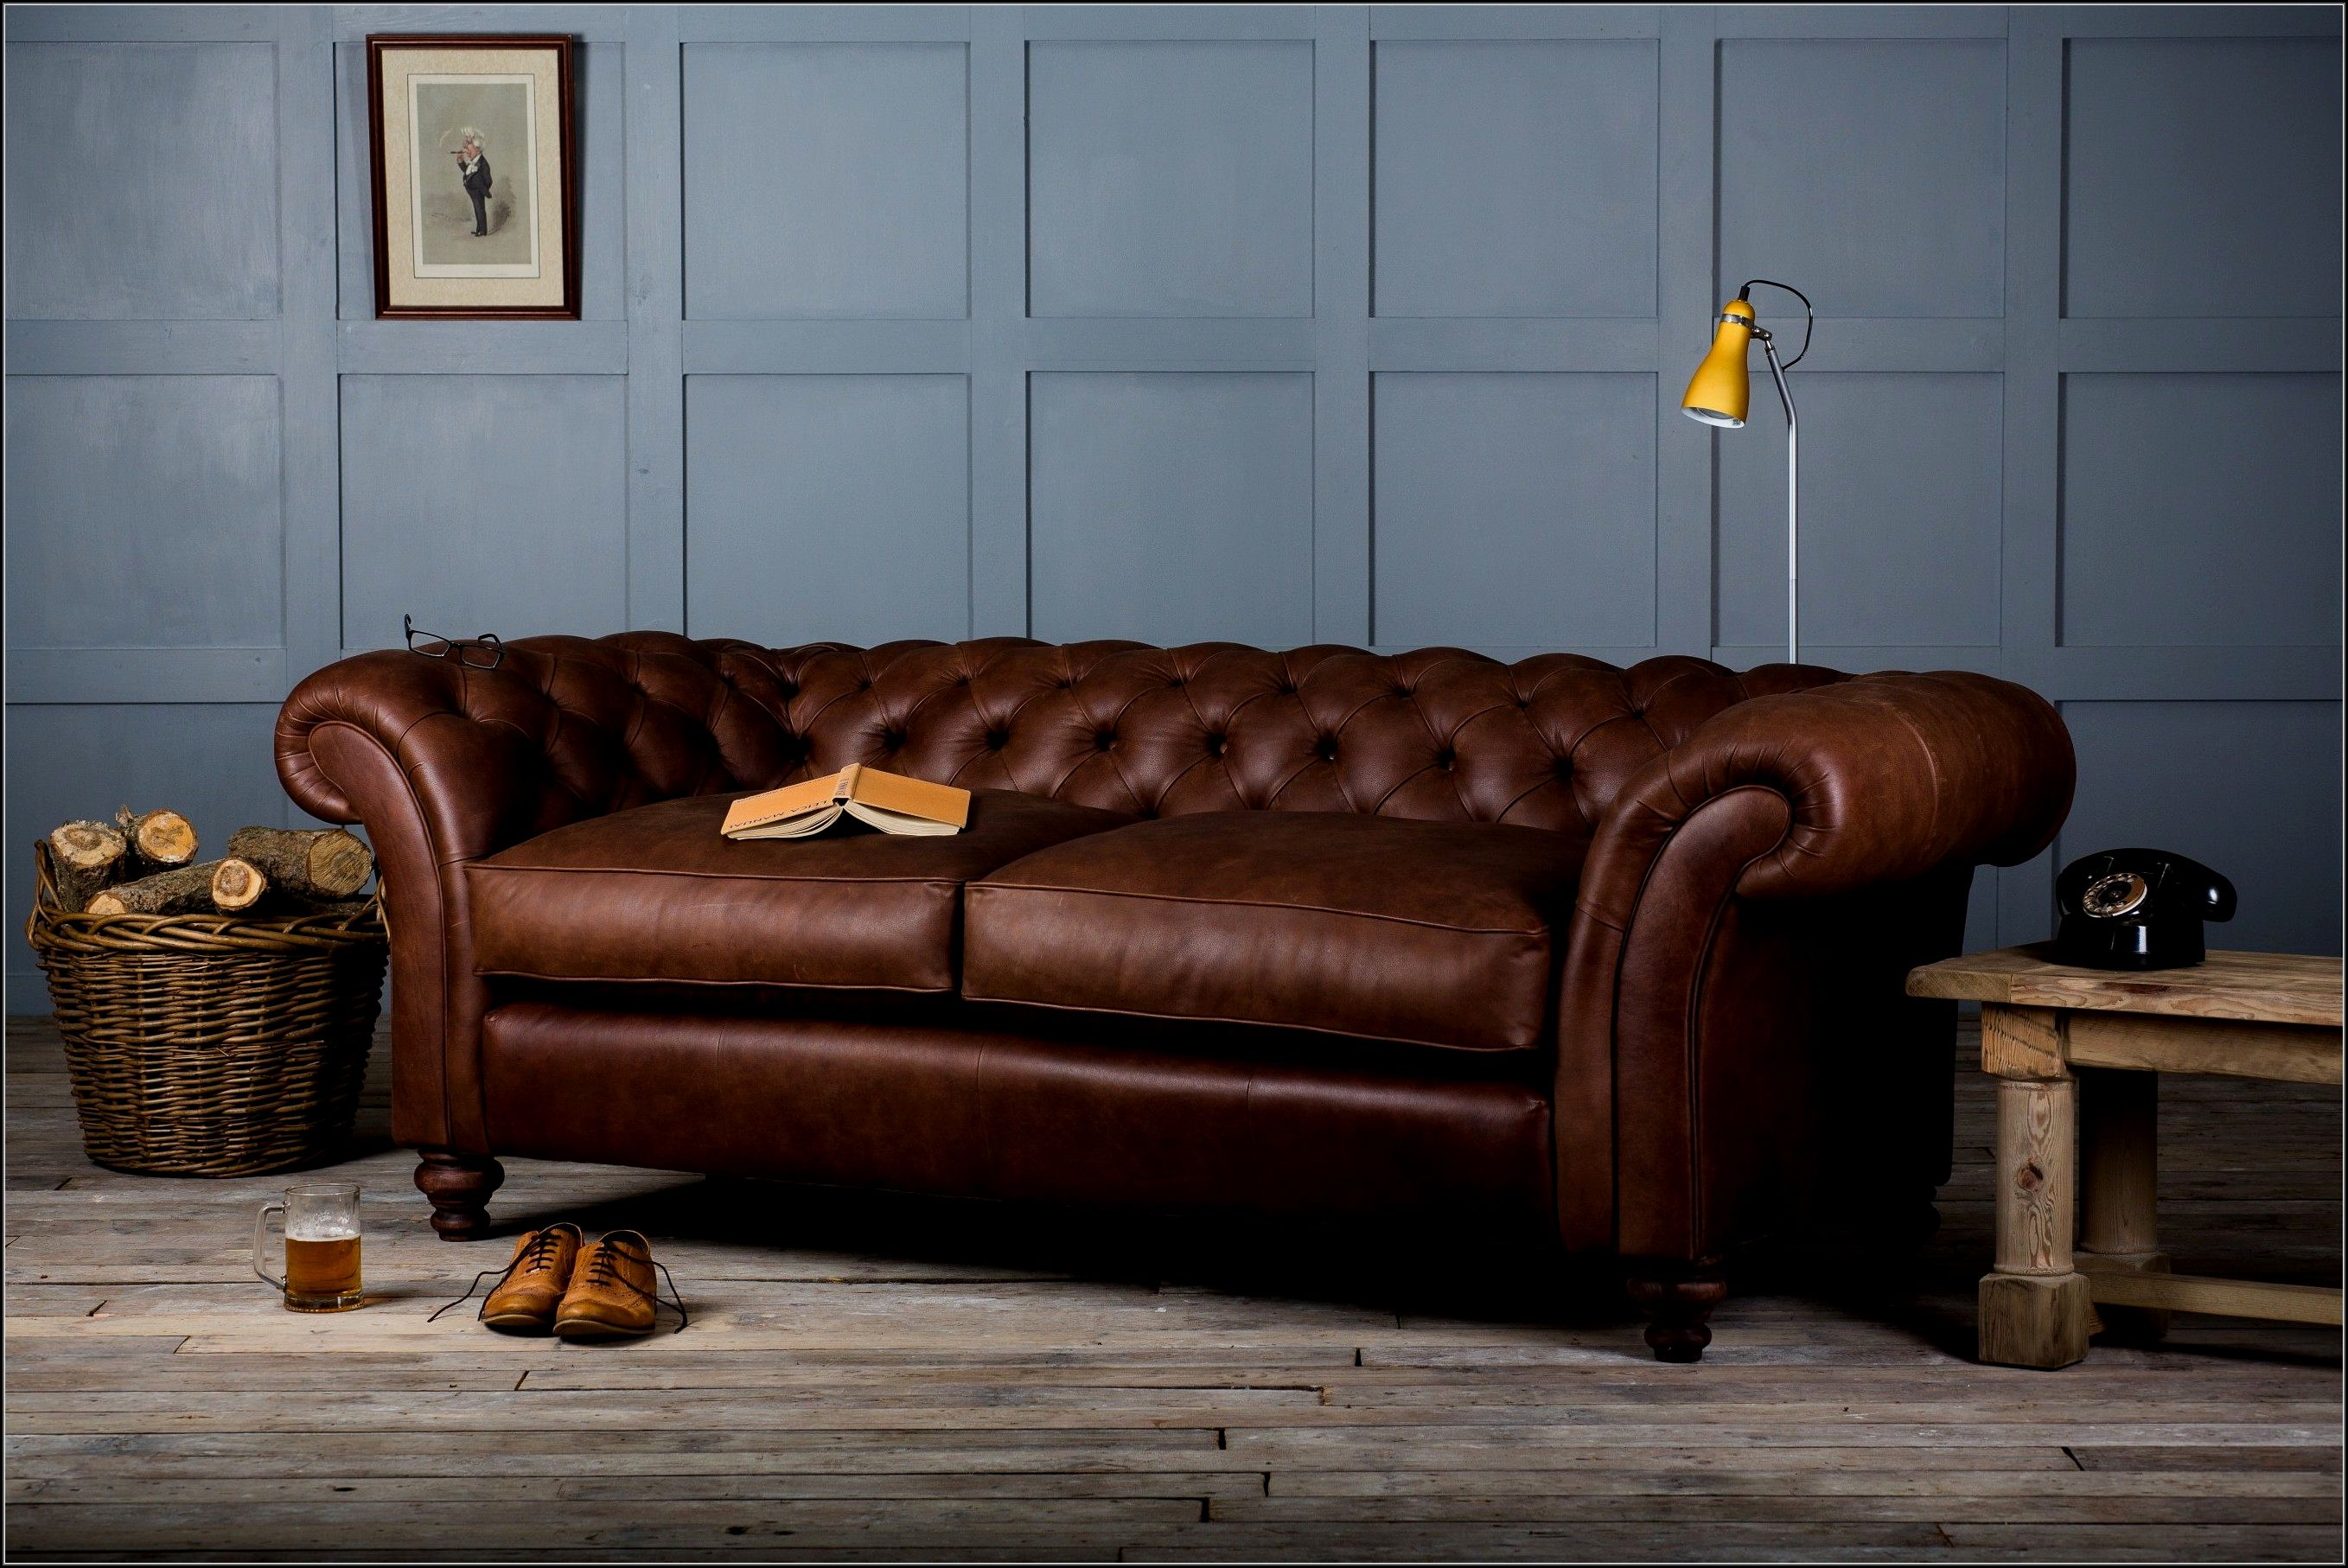 luxury pottery barn leather sofa collection-Finest Pottery Barn Leather sofa Concept